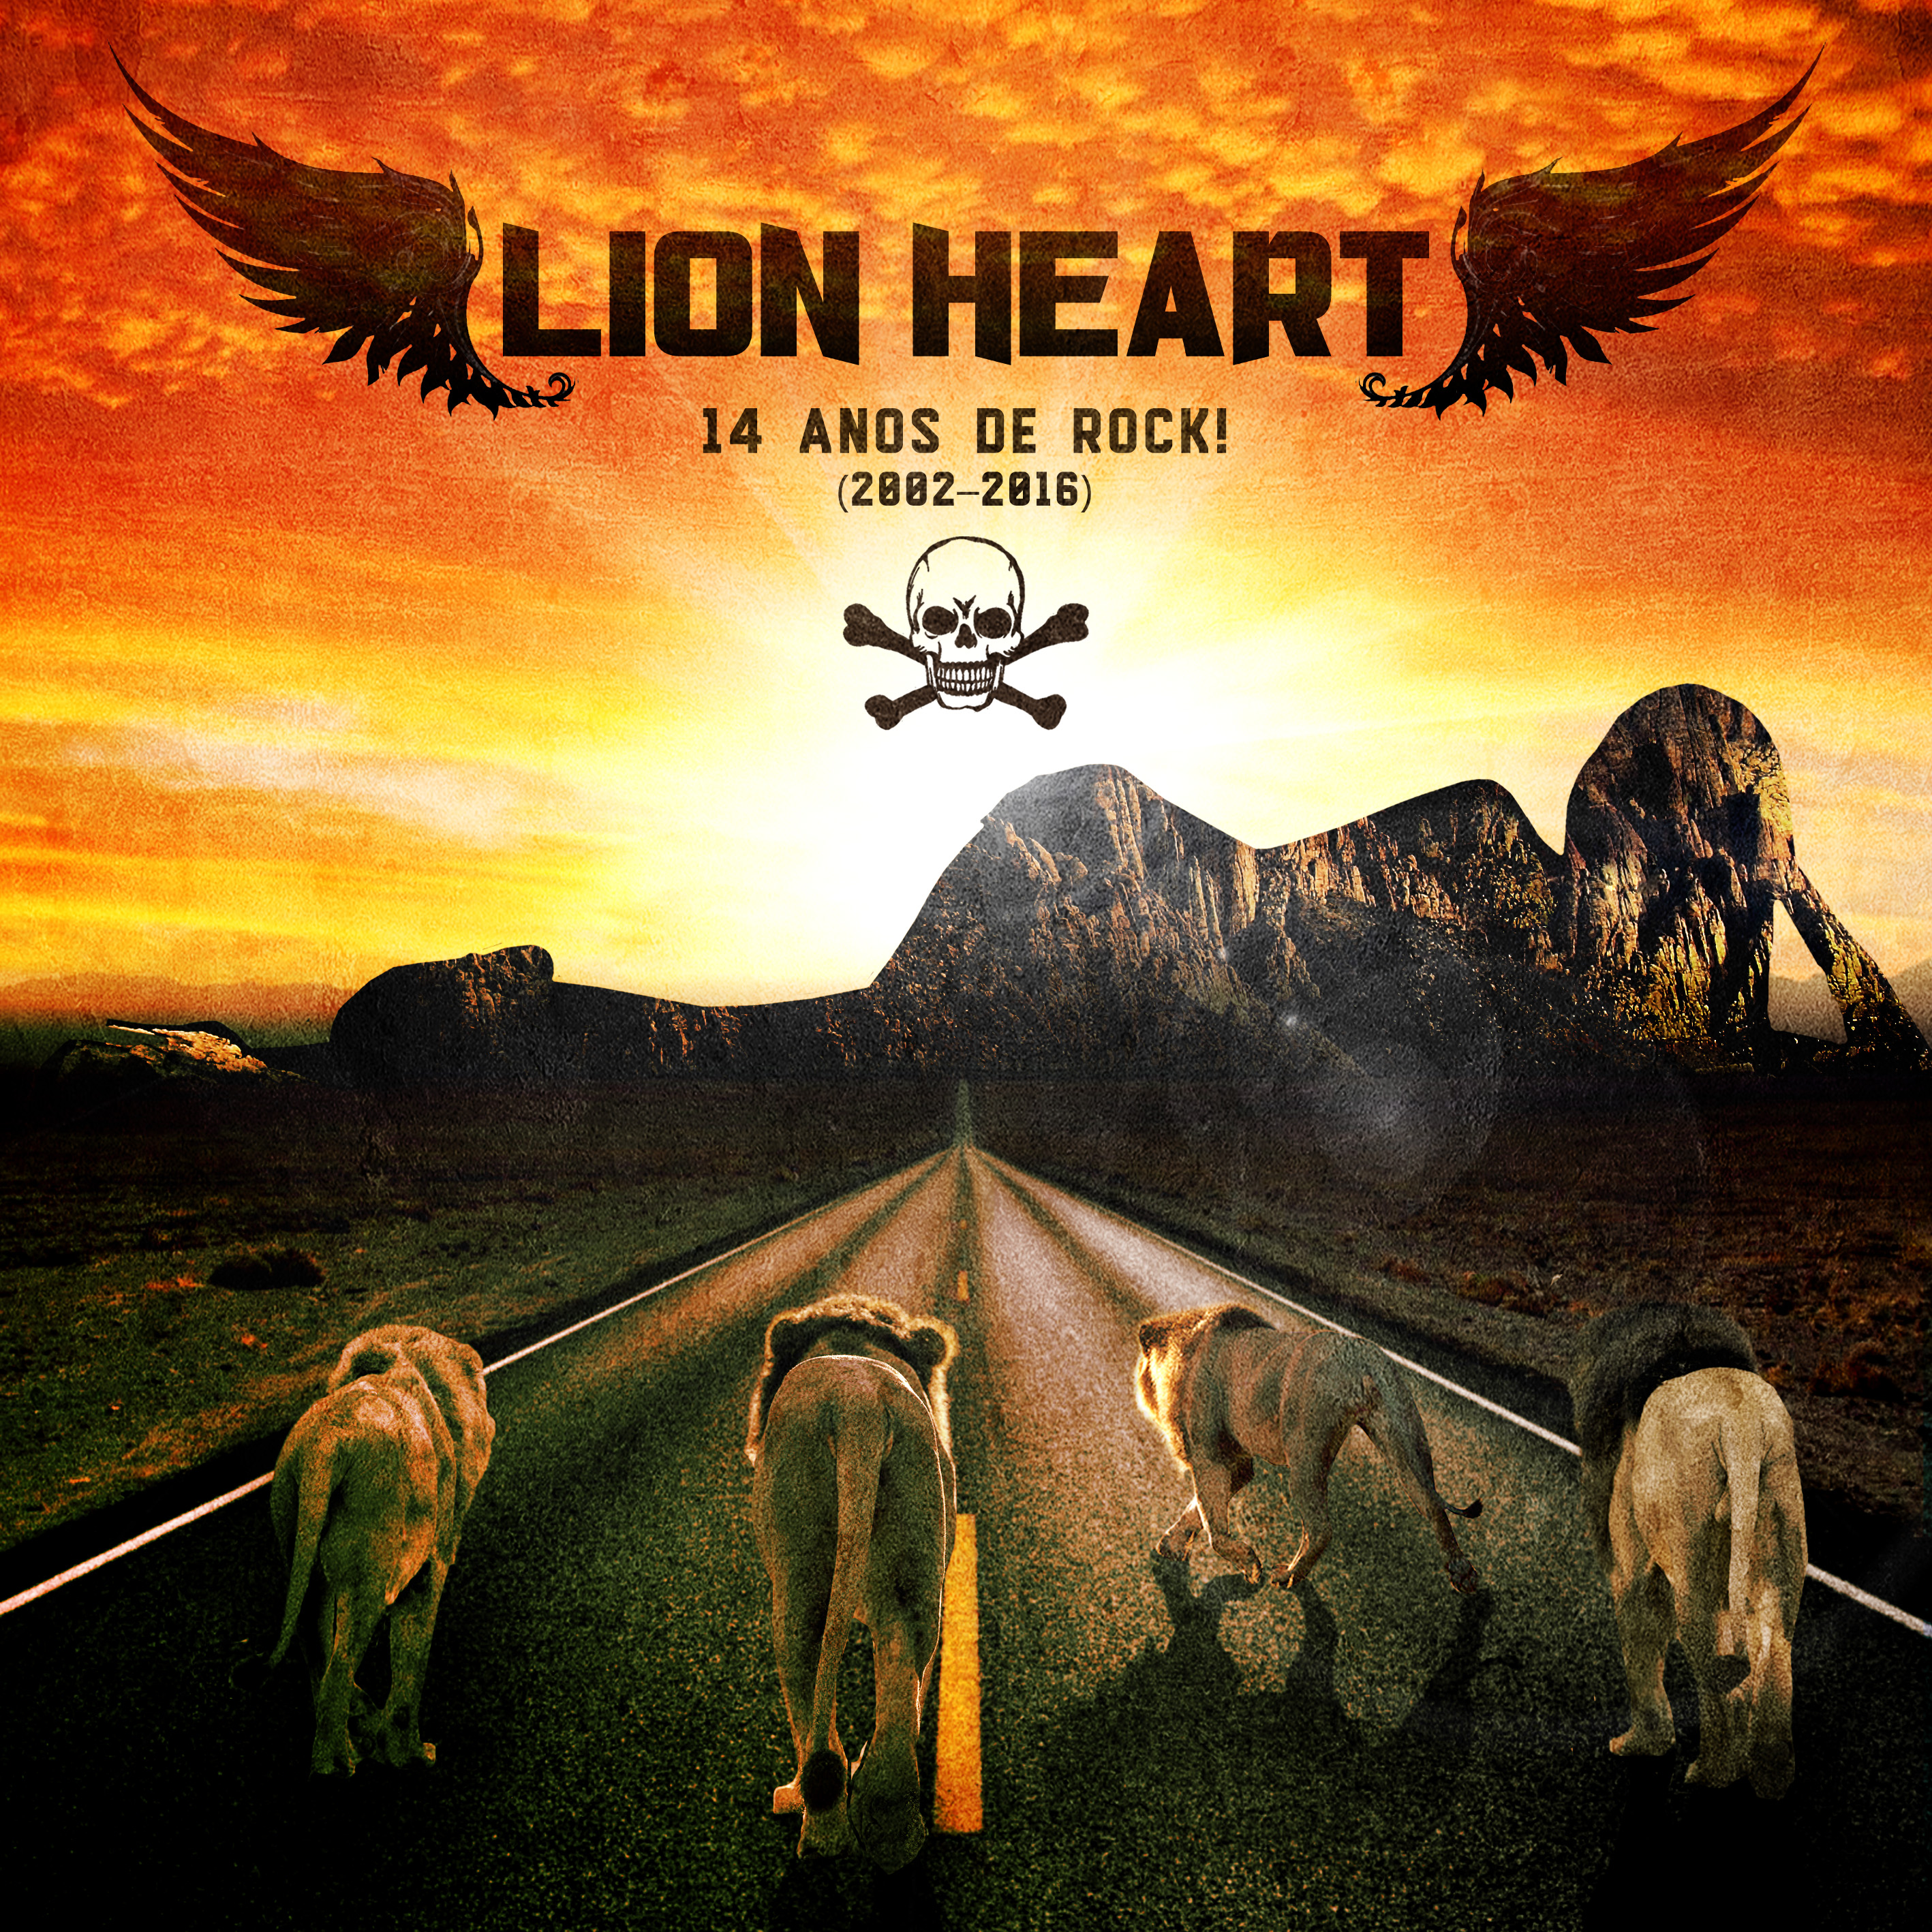 lion-heart-14-anos-de-rock